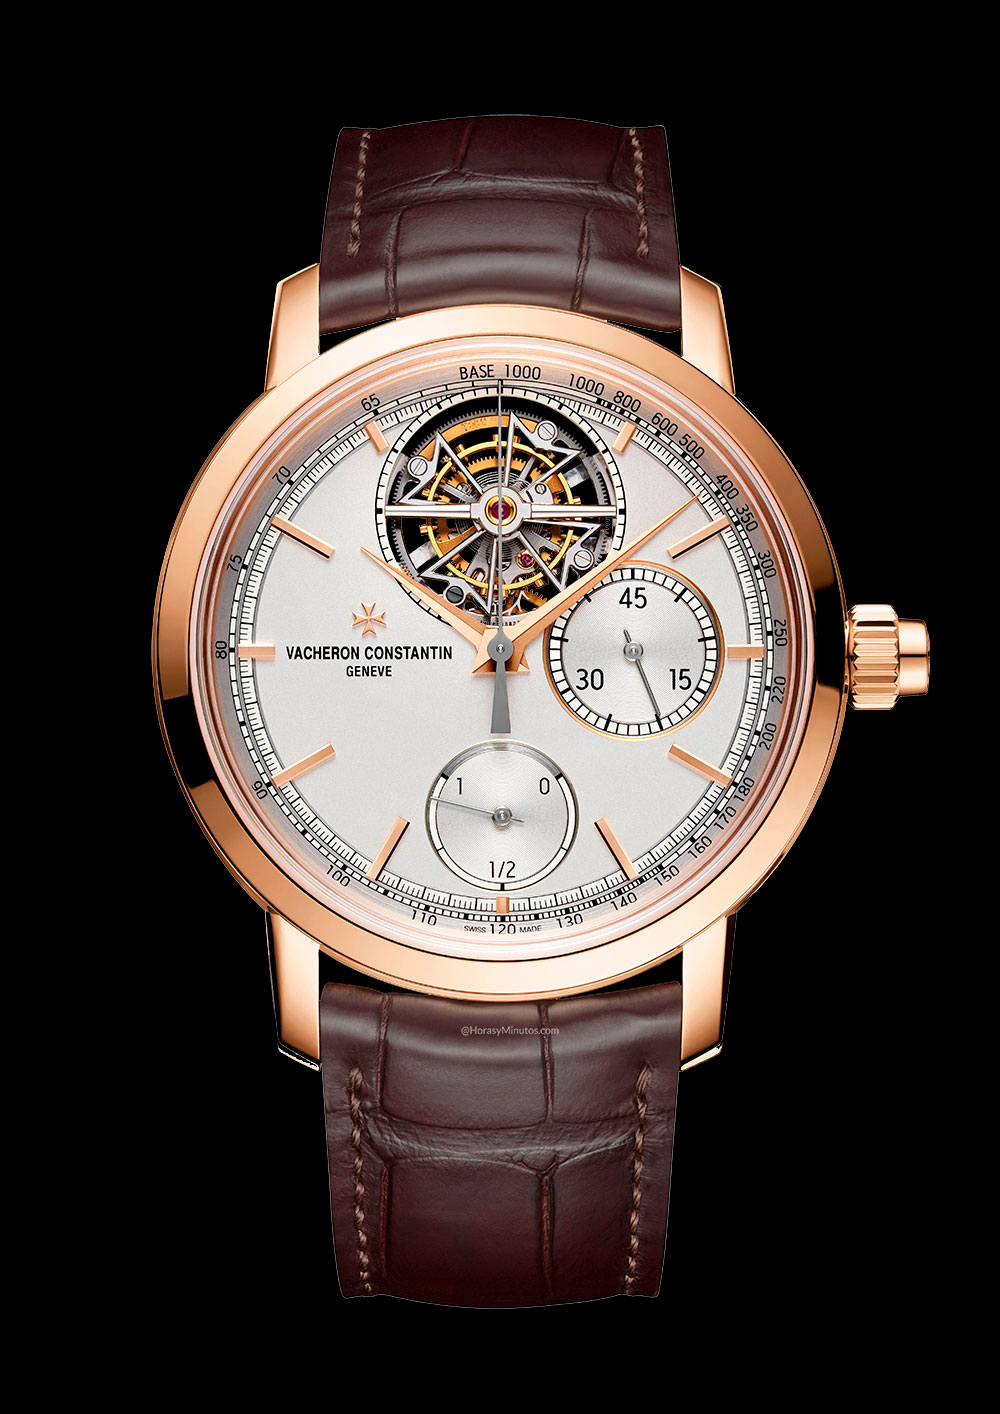 Vista frontal del Vacheron Constantin Traditionnelle Chronograph Tourbillon